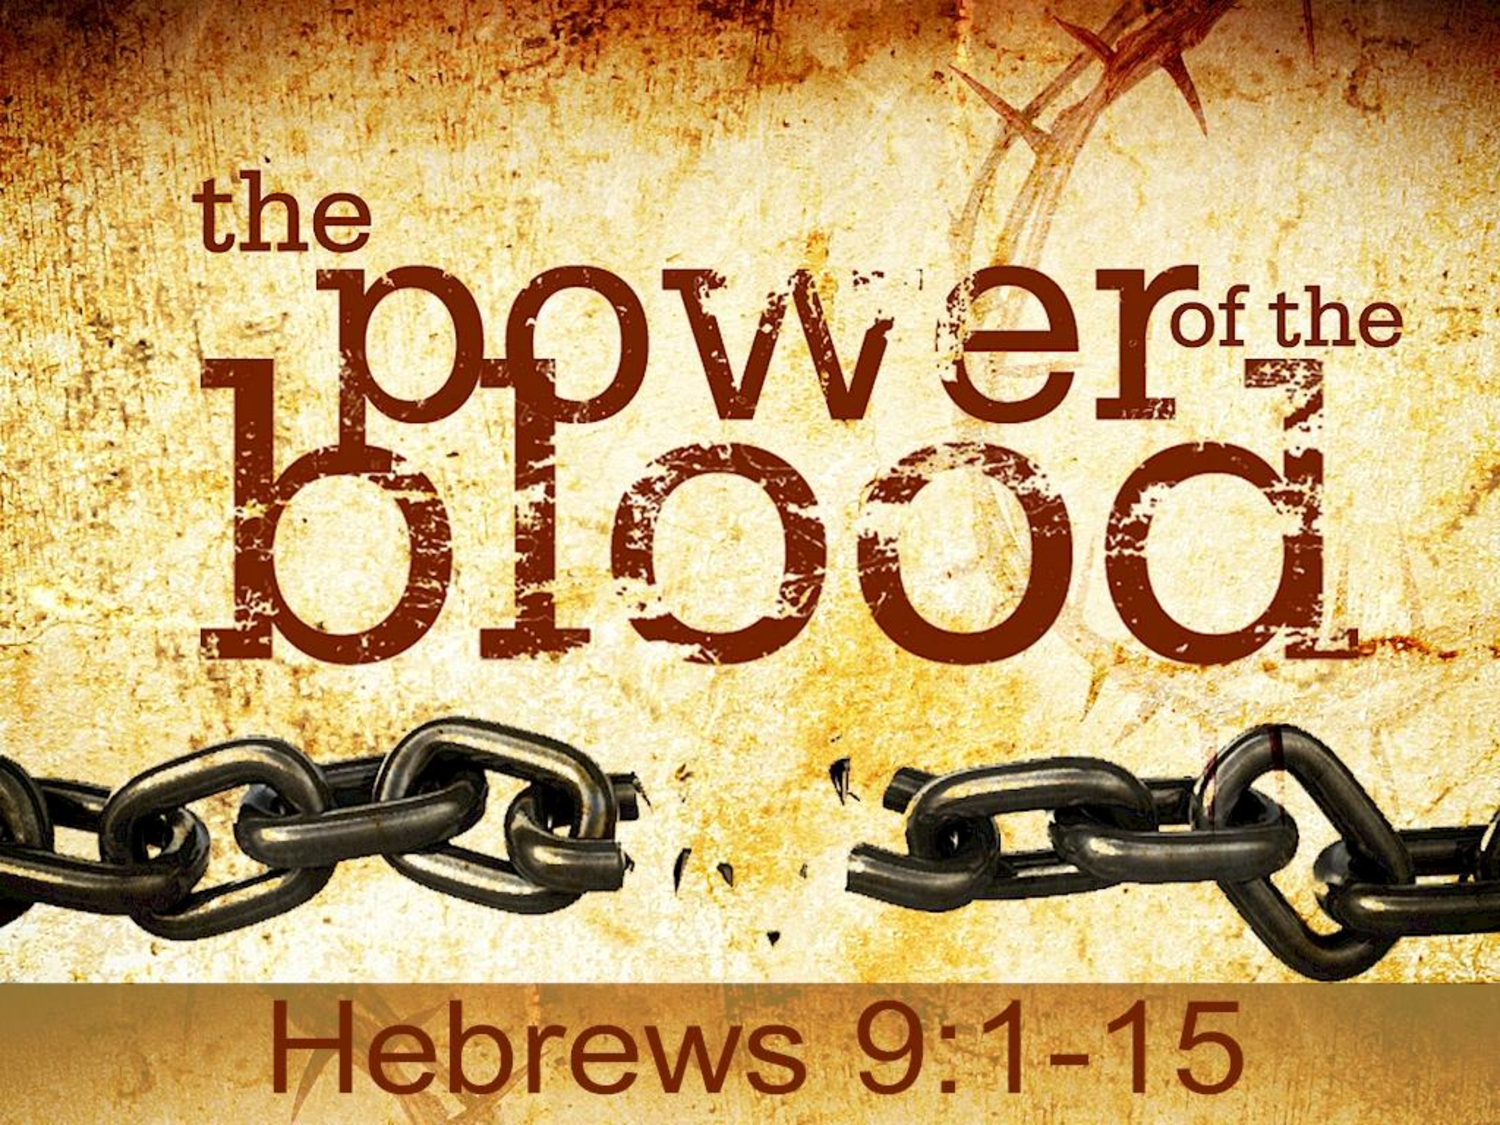 the power of the blood of jesus christ pdf